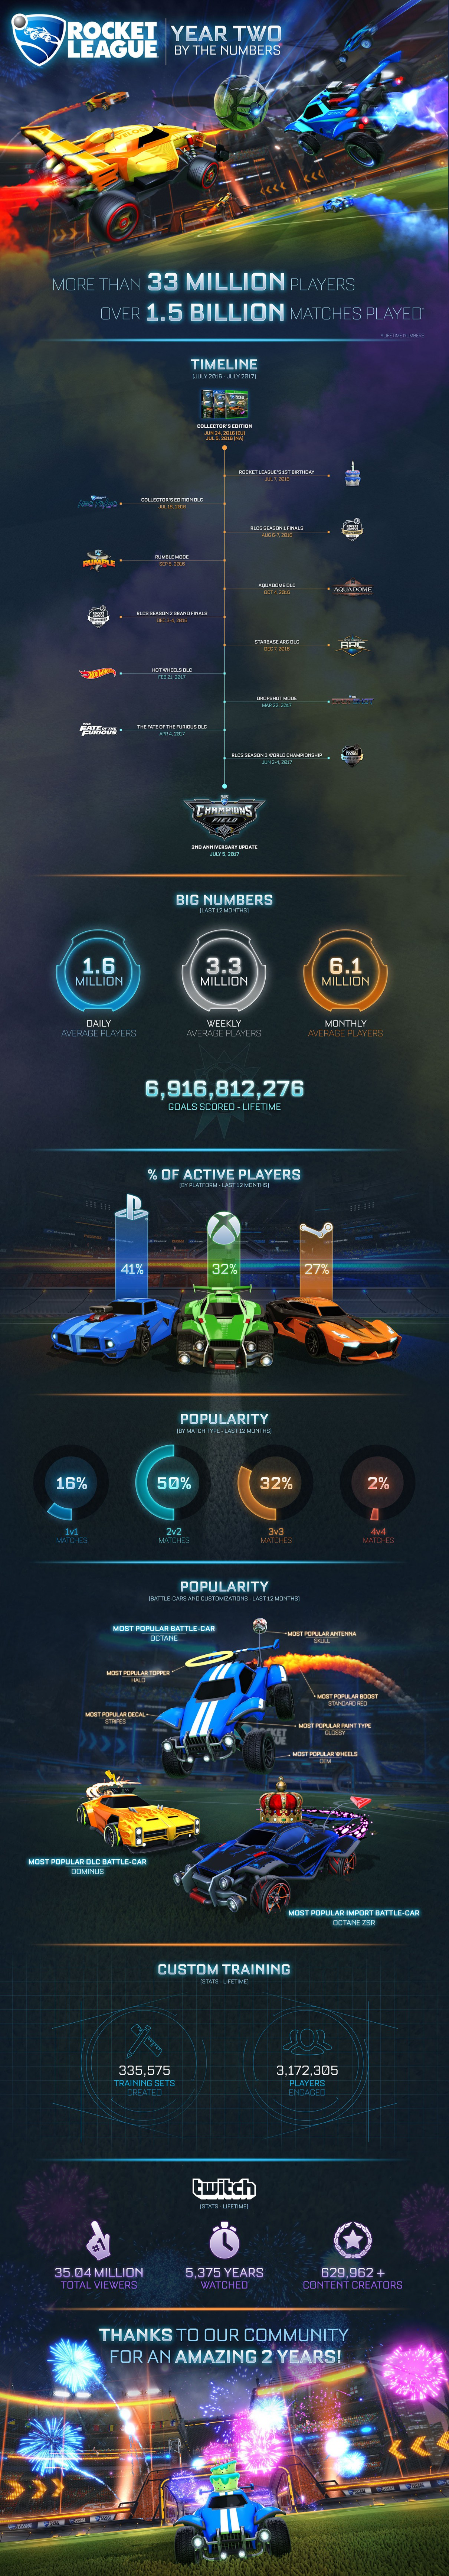 Rocket League 2 years stats